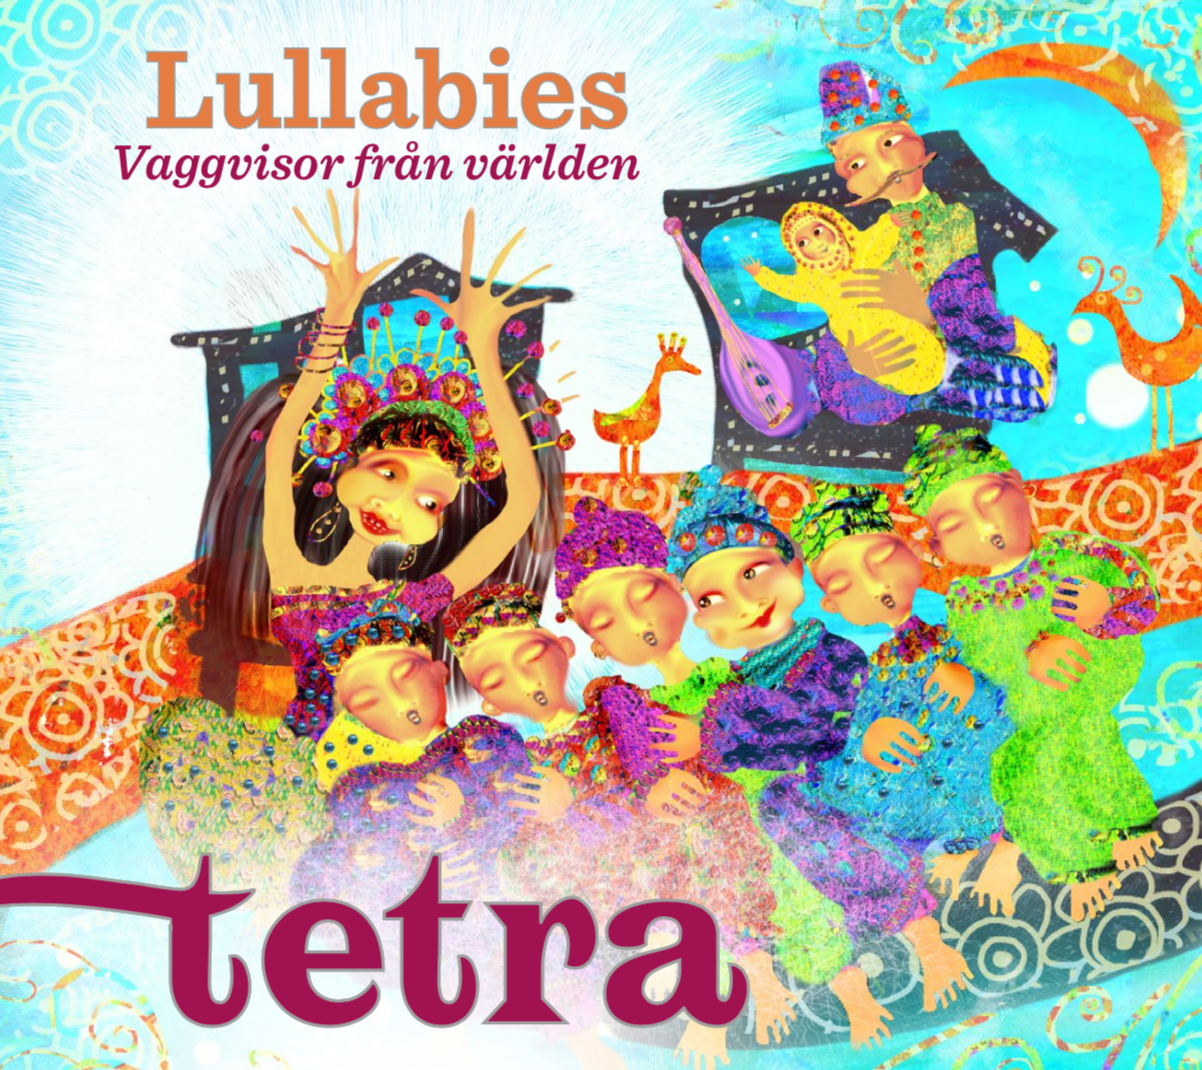 Tetra, Lullabies lullabies from around the world